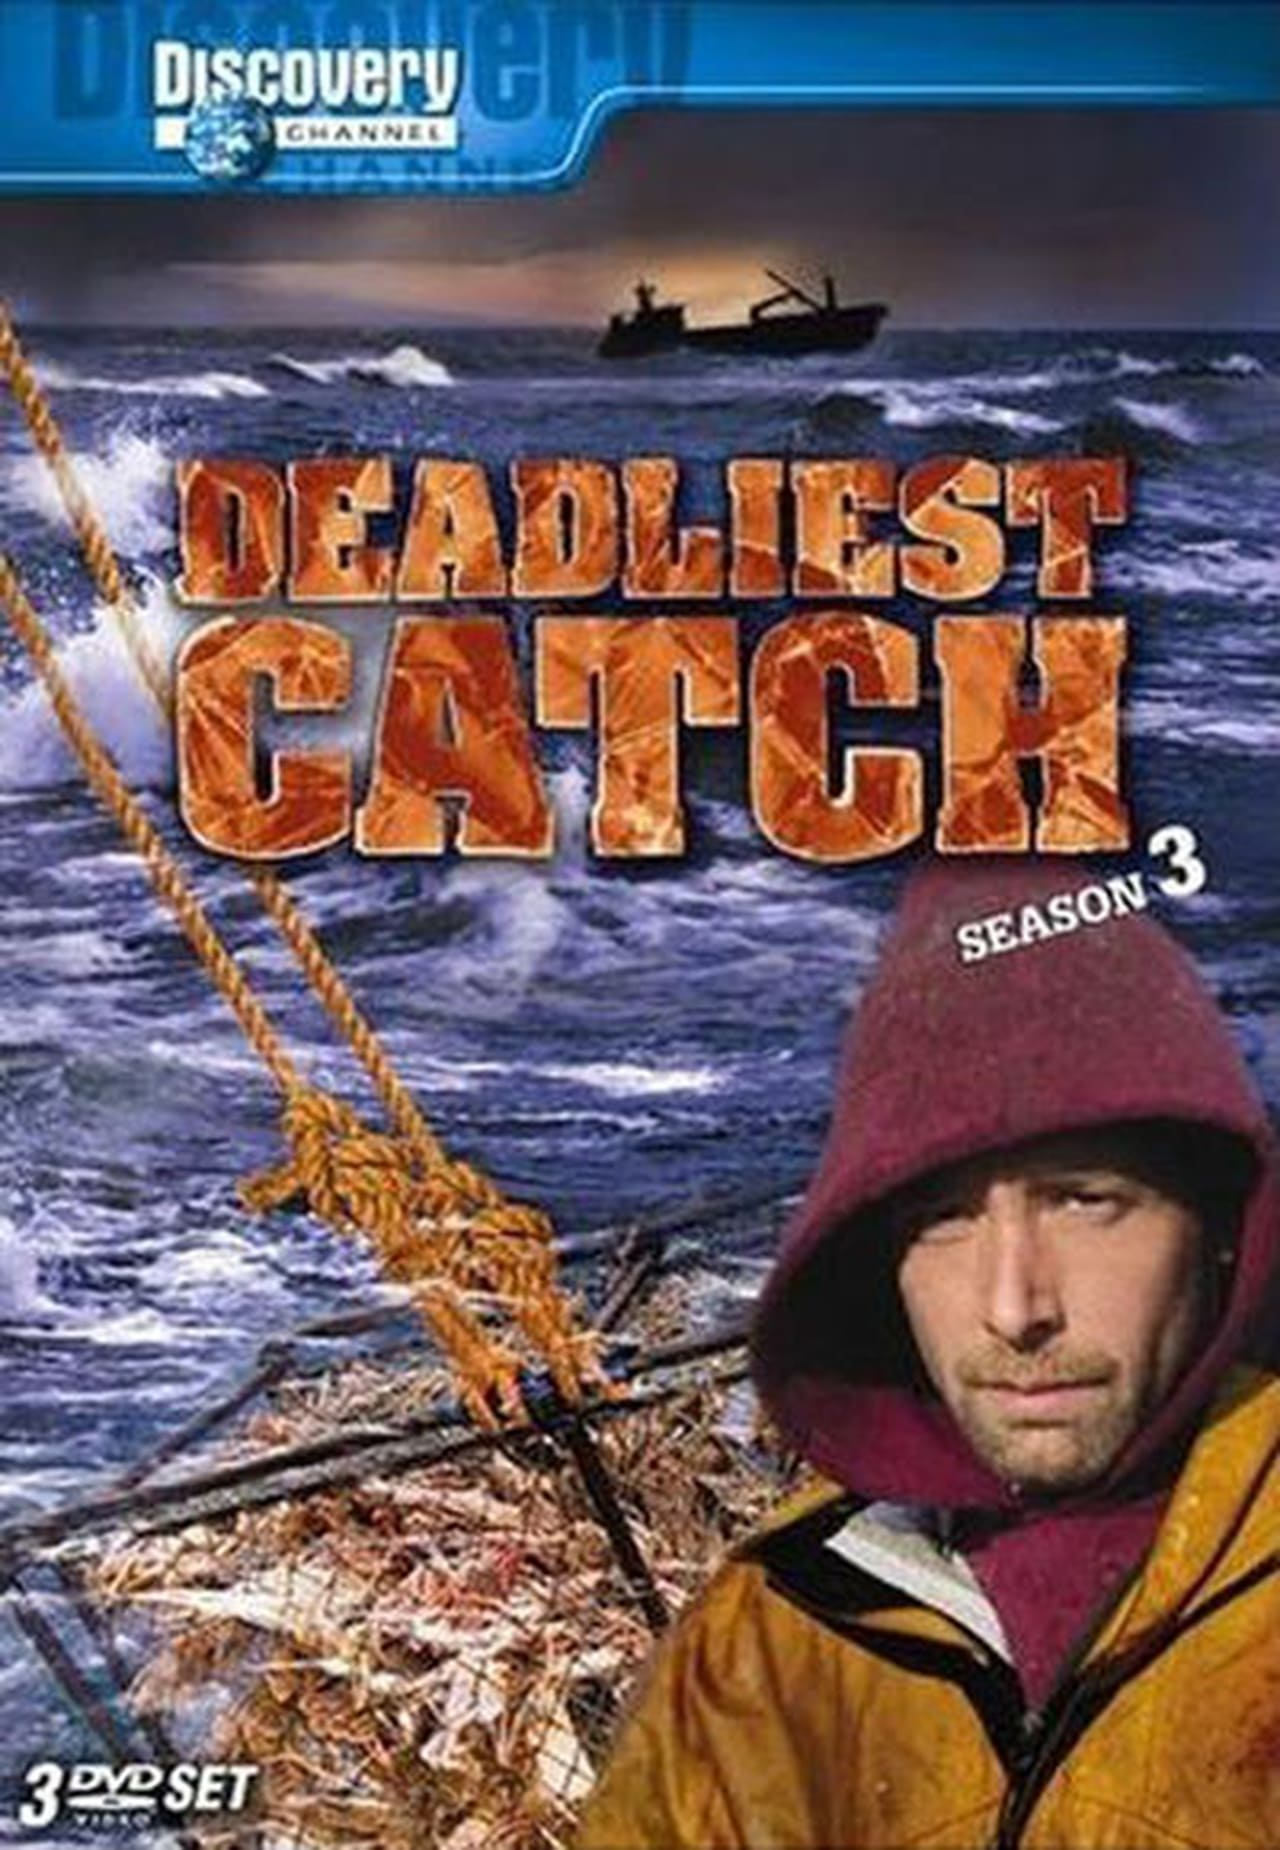 Watch Deadliest Catch Season 3 Online